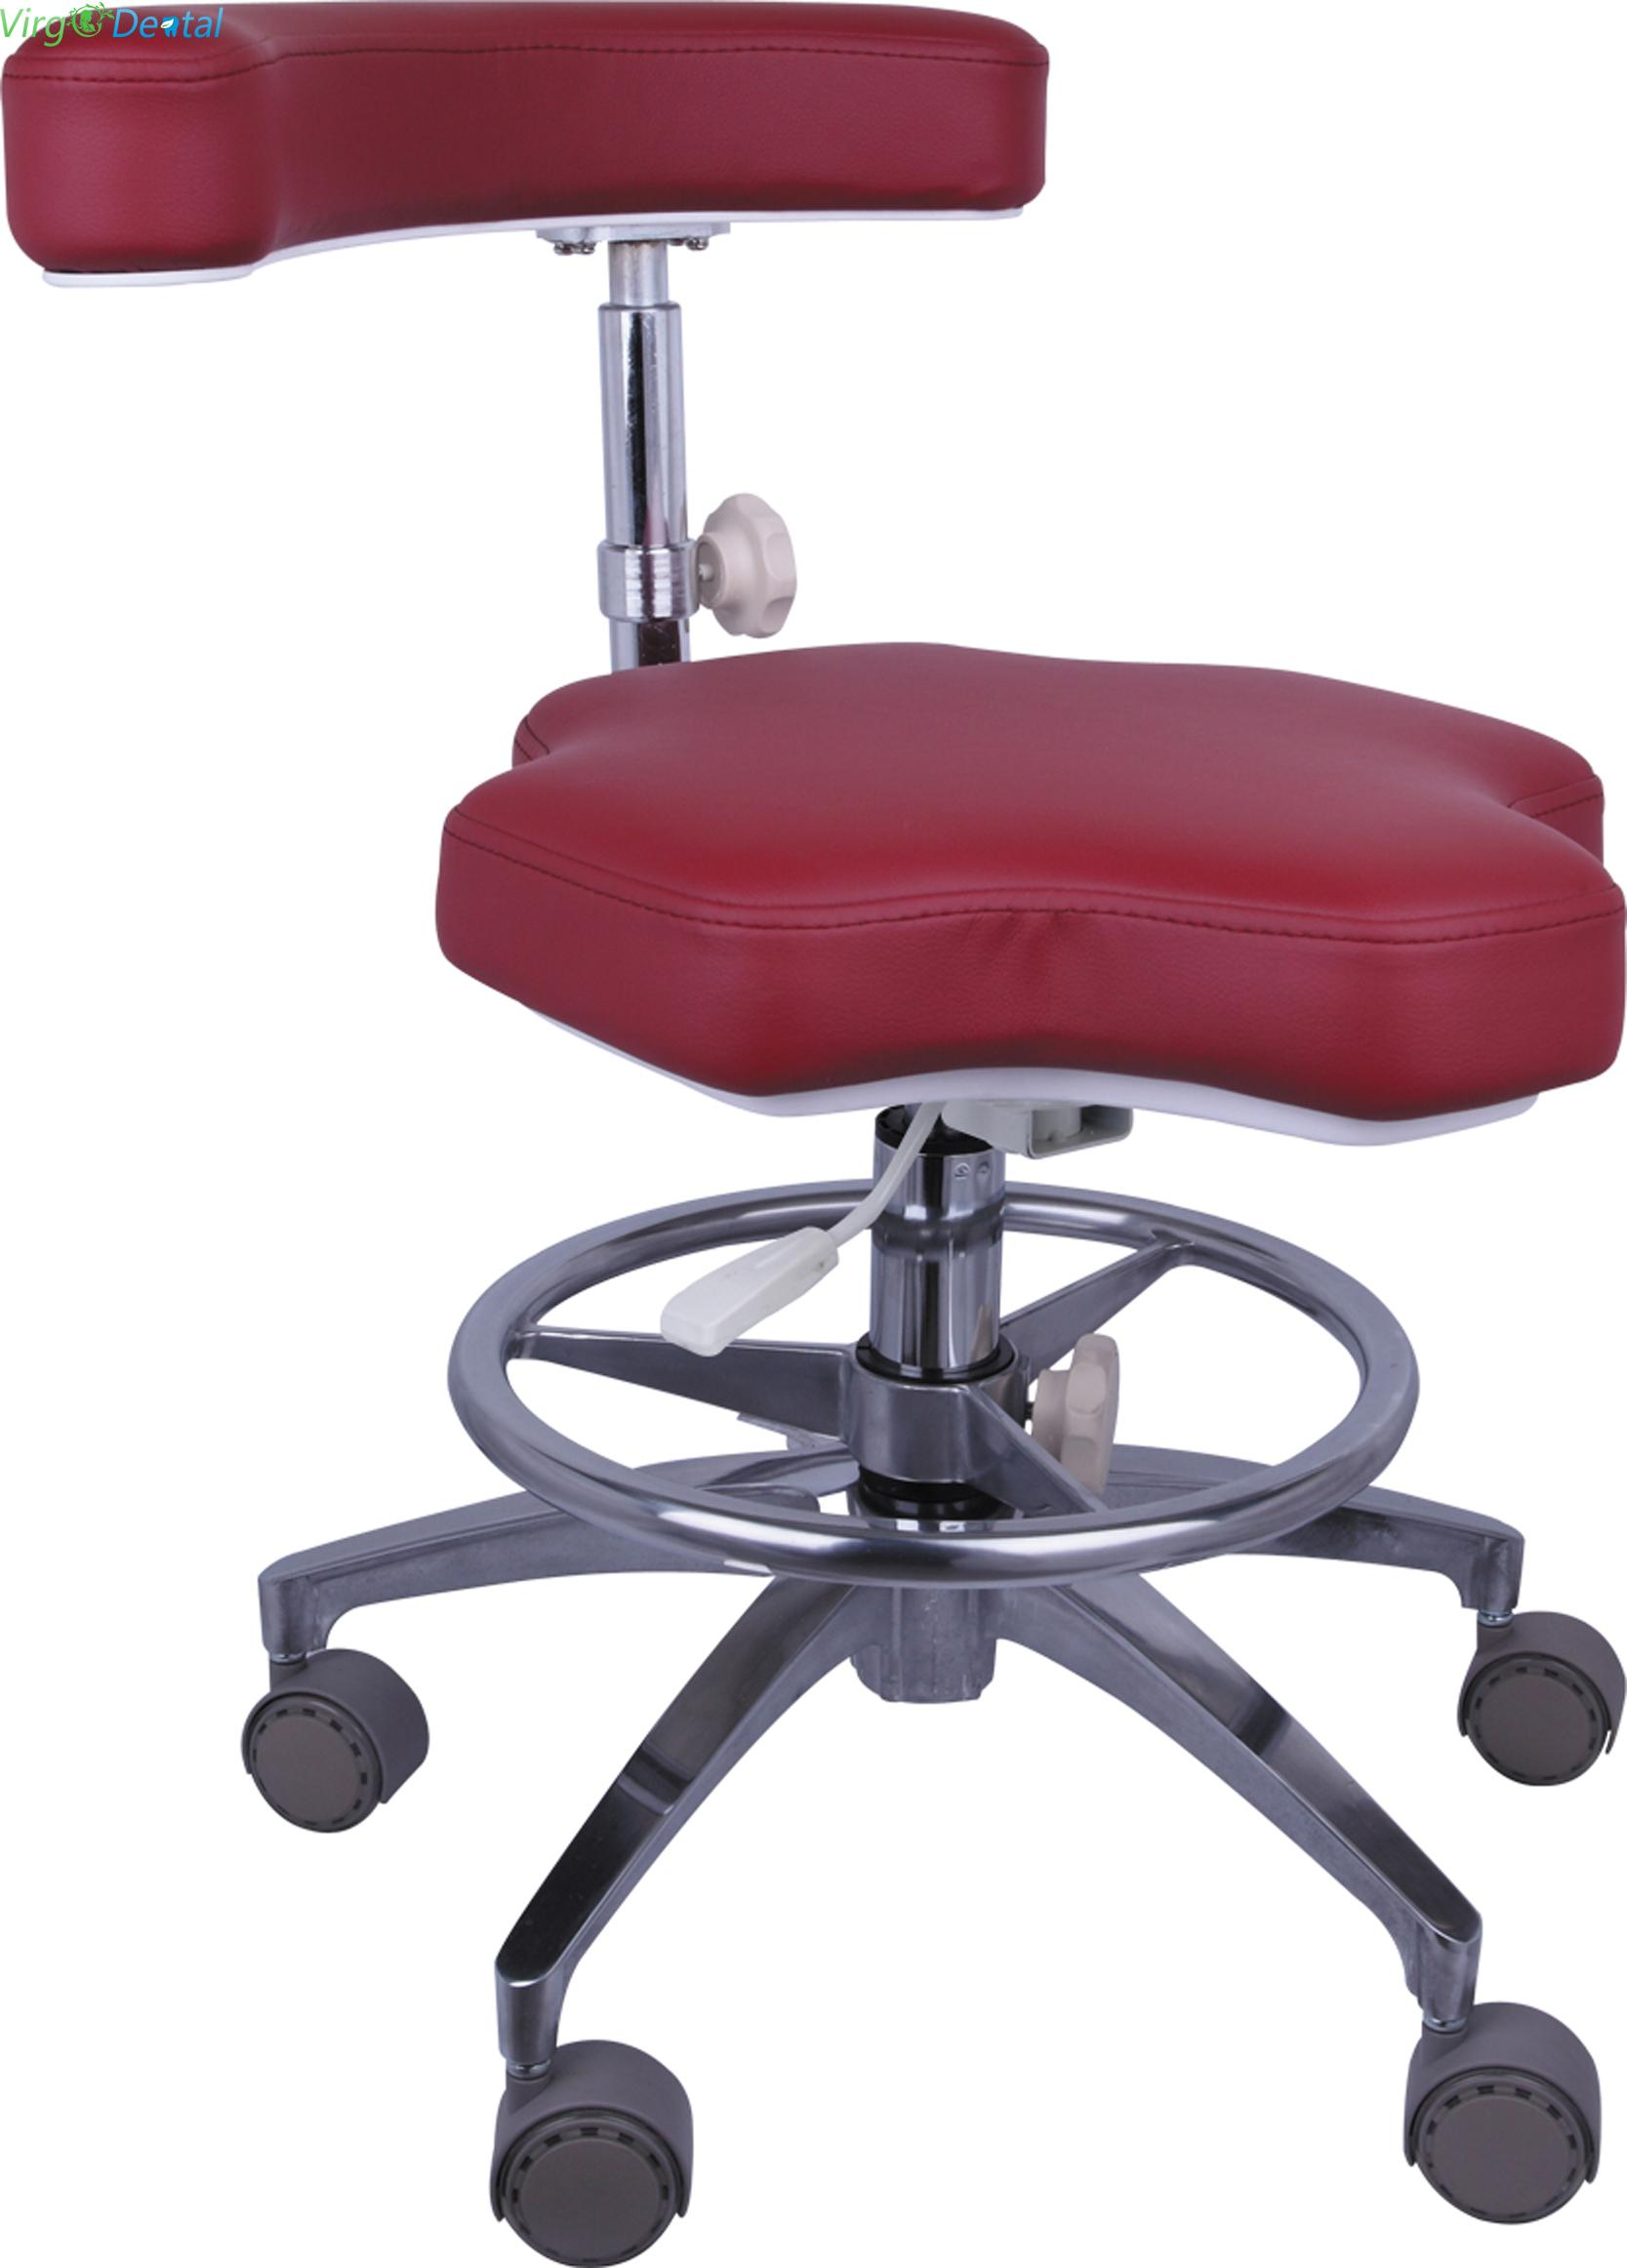 Nurse Stool Adjustable Mobile Operatory Chair QY90B Leather Type 20 Colors Optional